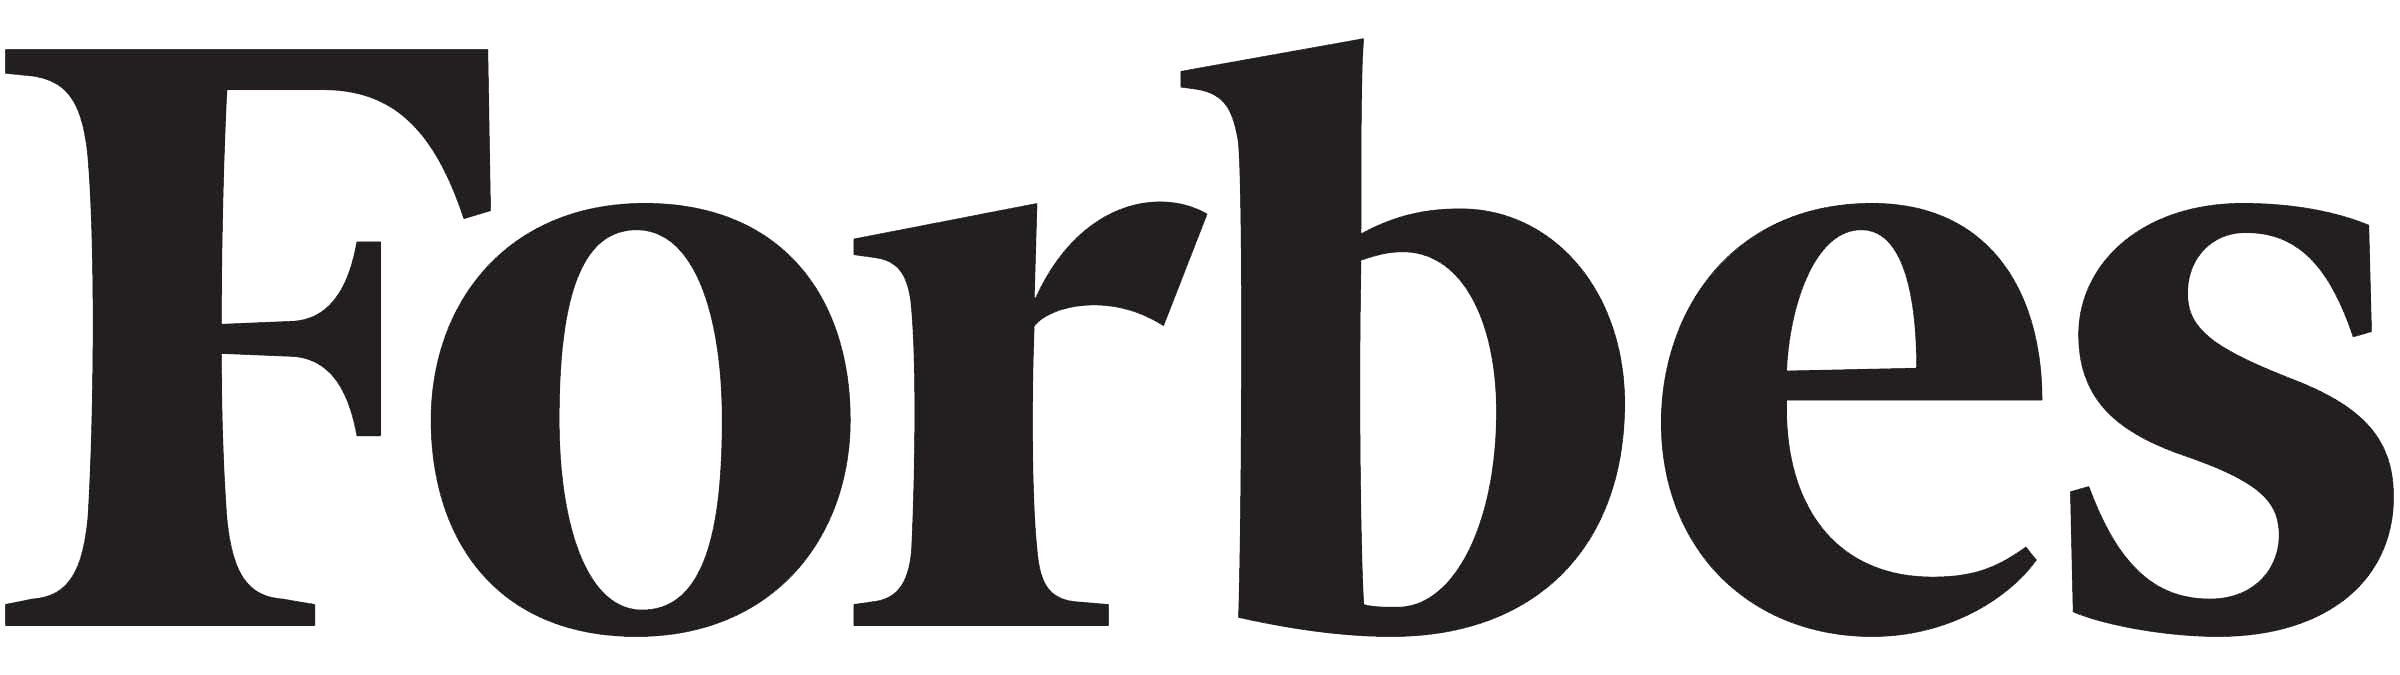 forbes logo blk